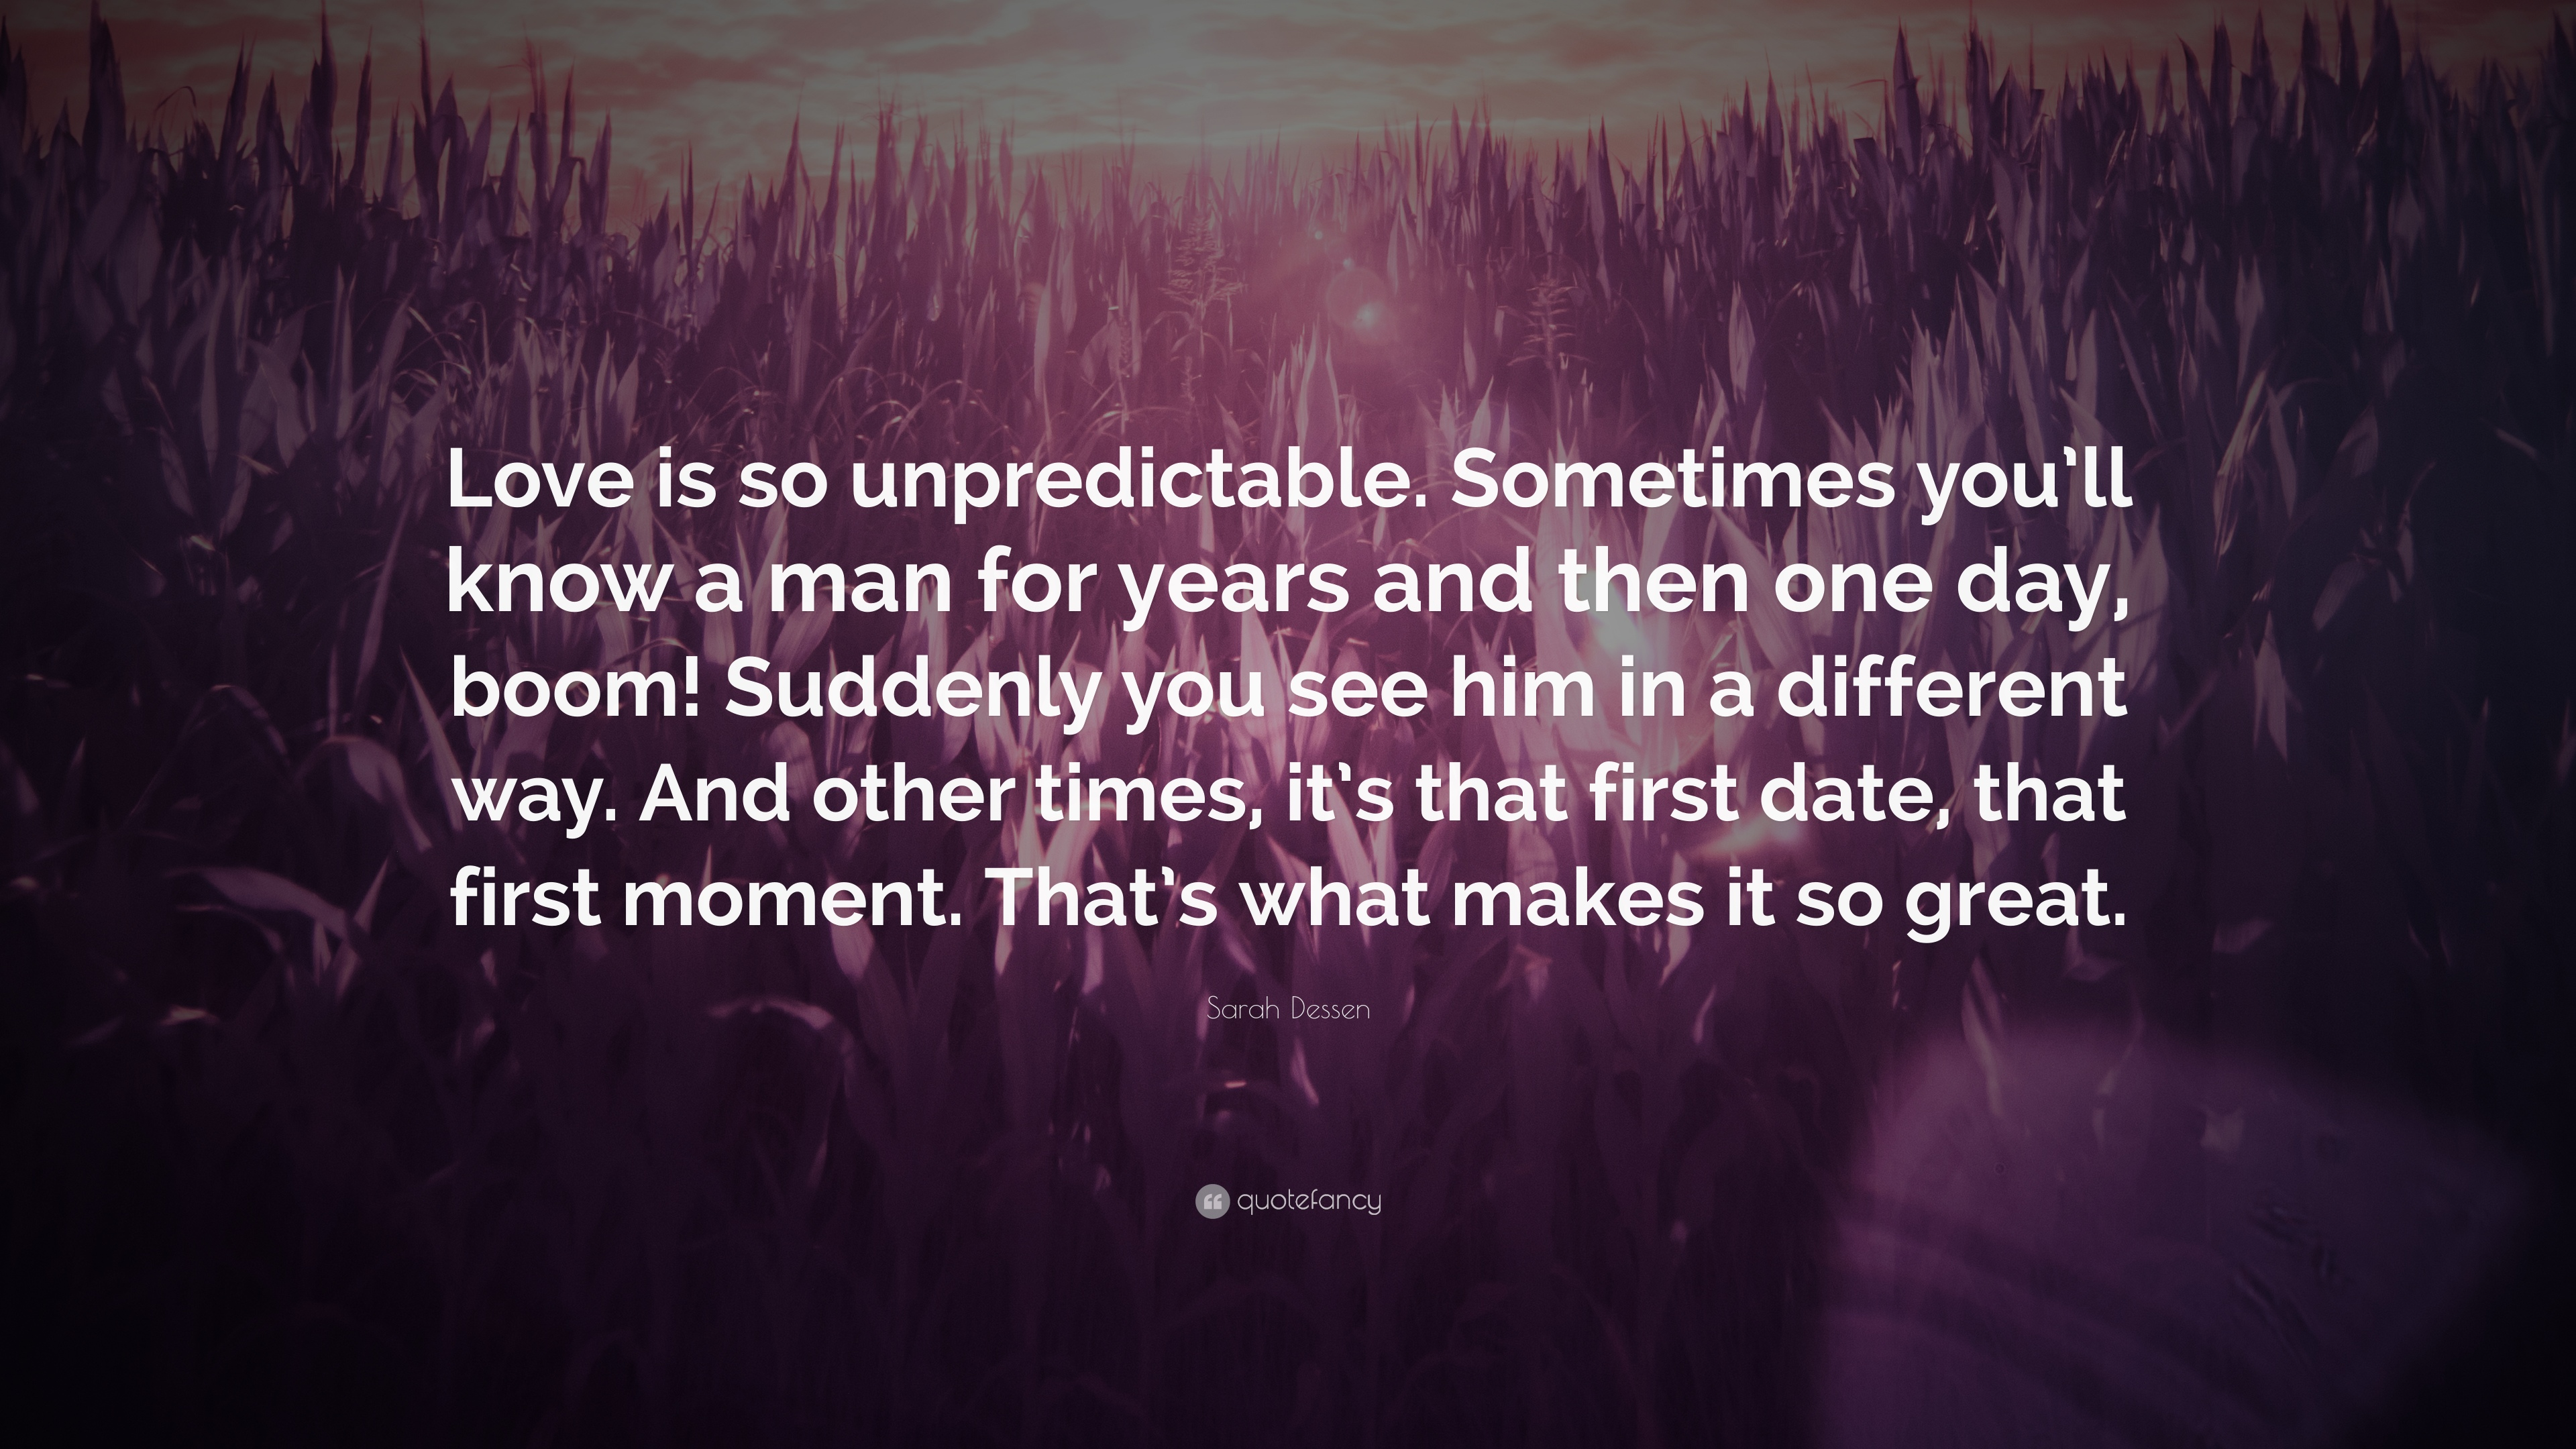 Sarah Dessen Quote: U201cLove Is So Unpredictable. Sometimes Youu0027ll Know A